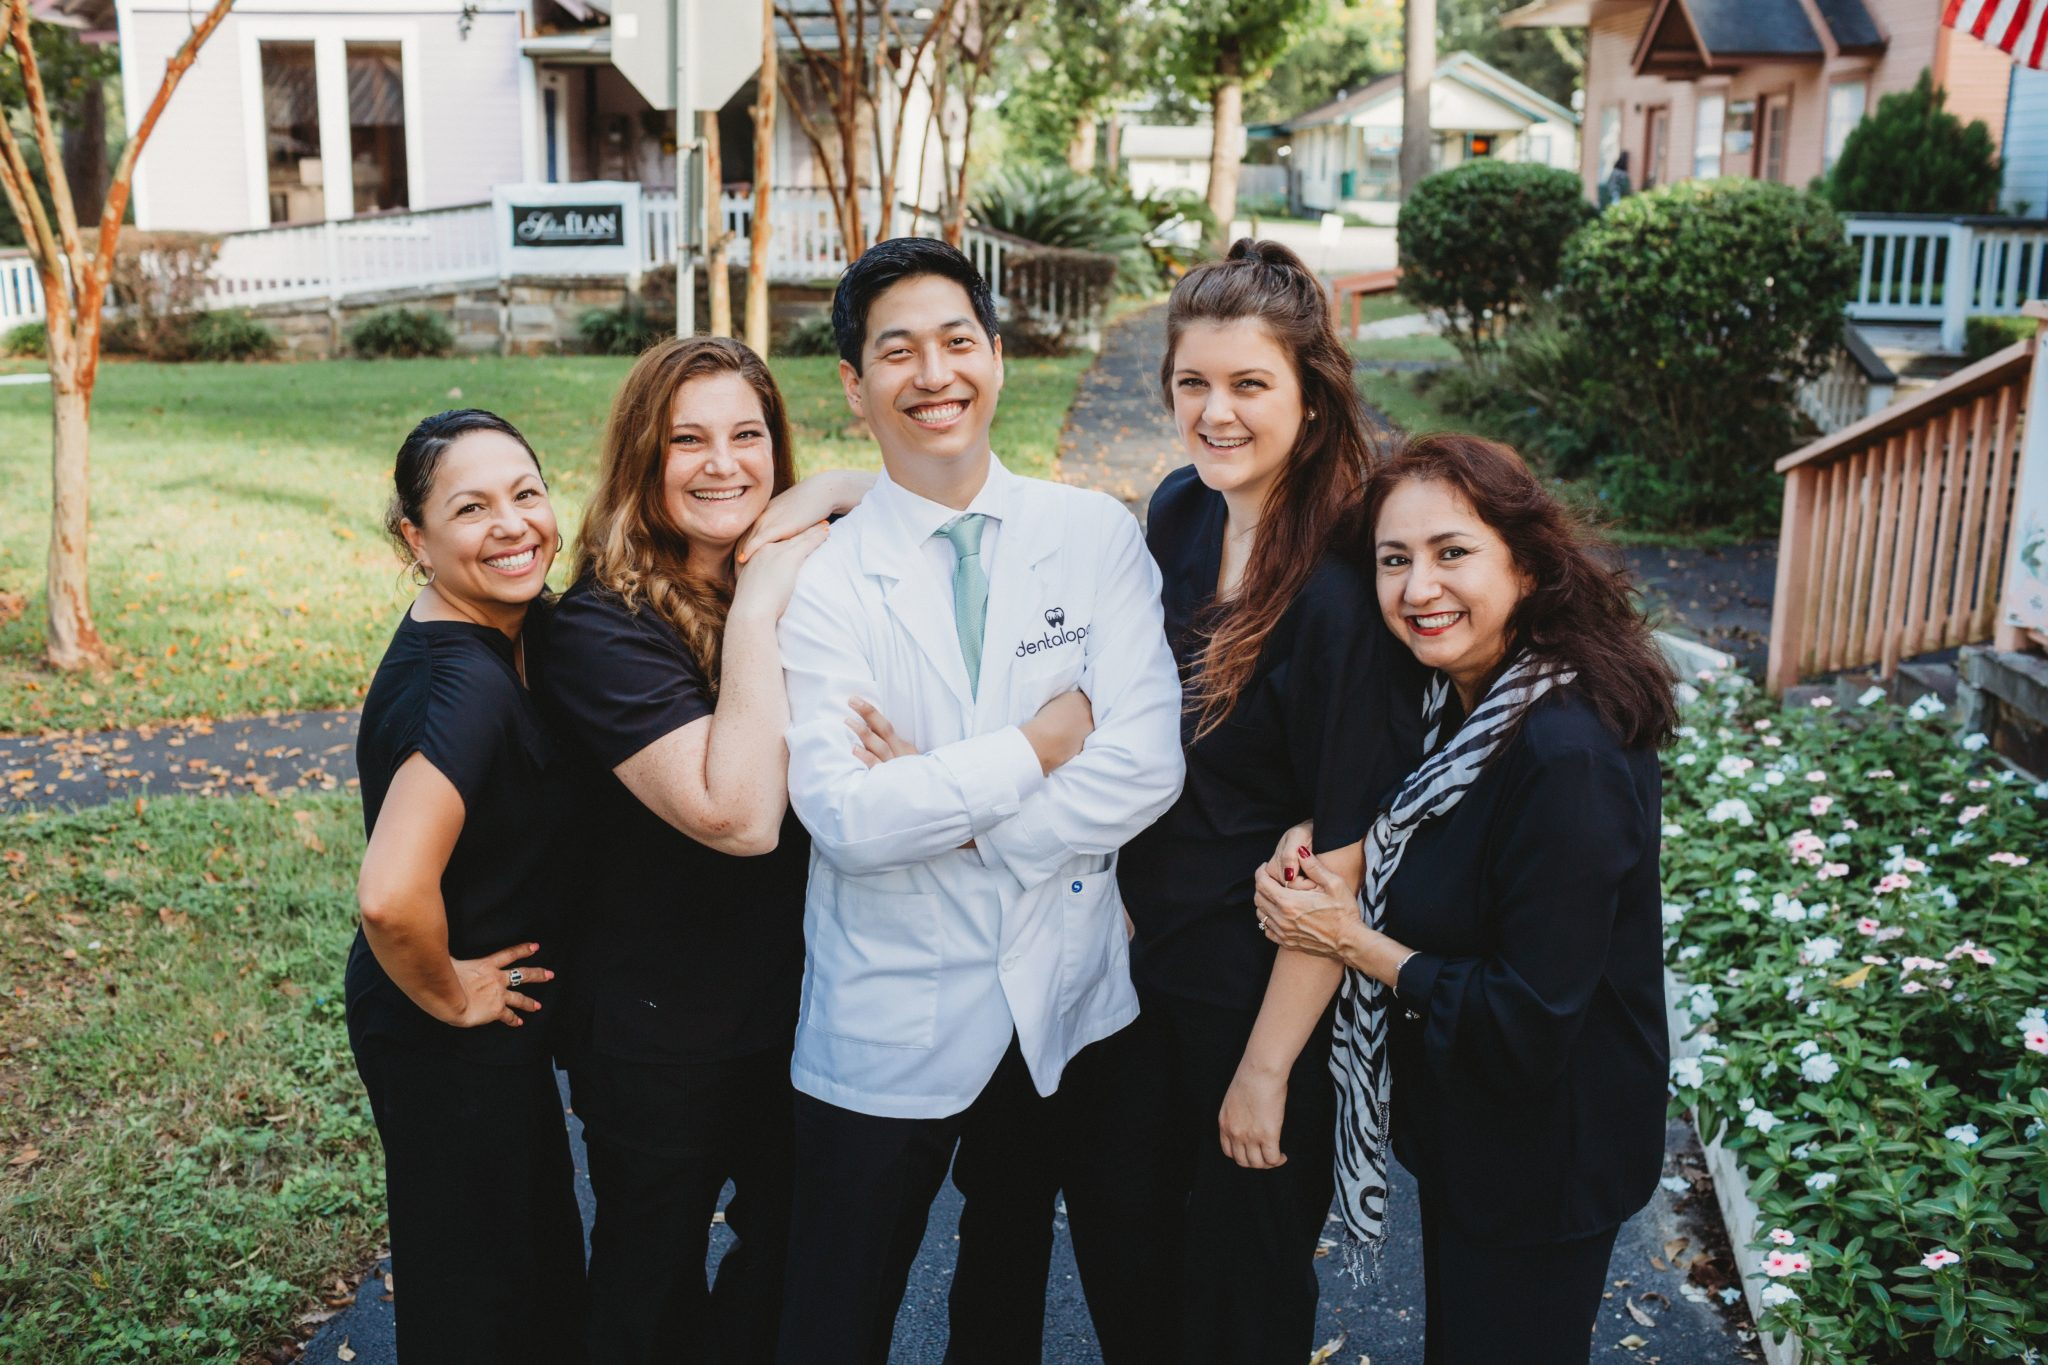 https://dentalopolis.com/wp-content/uploads/2017/03/dentalopolis-implant-team.jpg